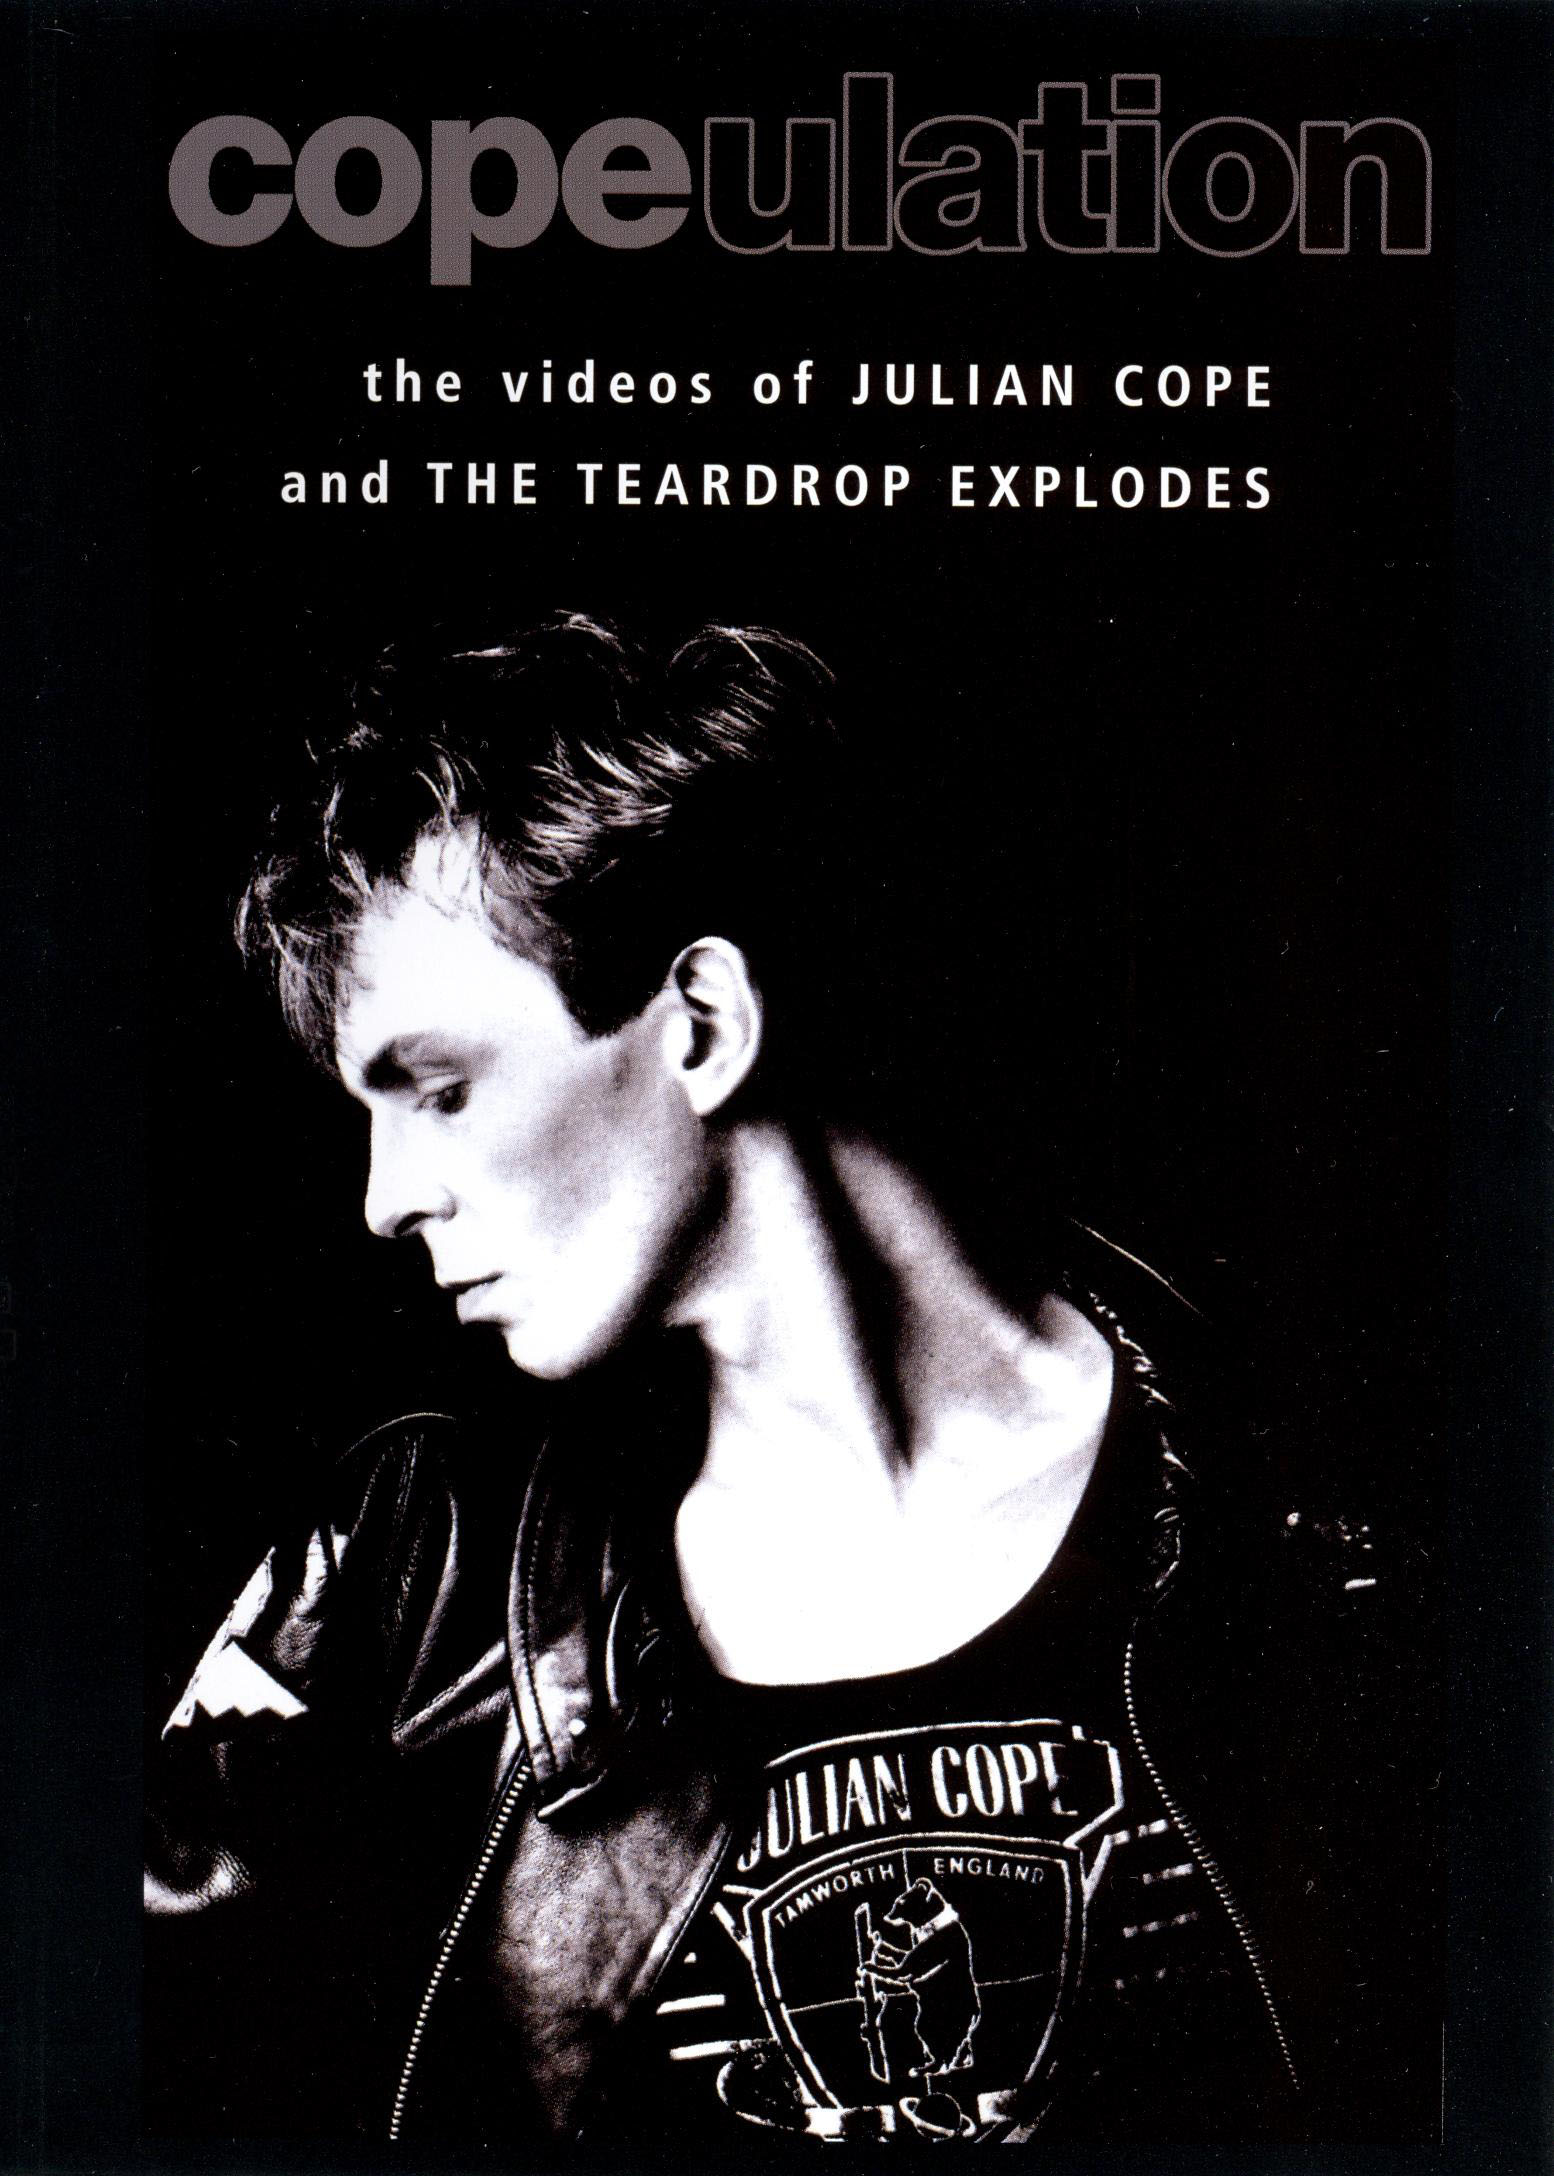 Julian Cope: Copeulation - The Videos of Julian Cope and The Teardrop Explodes